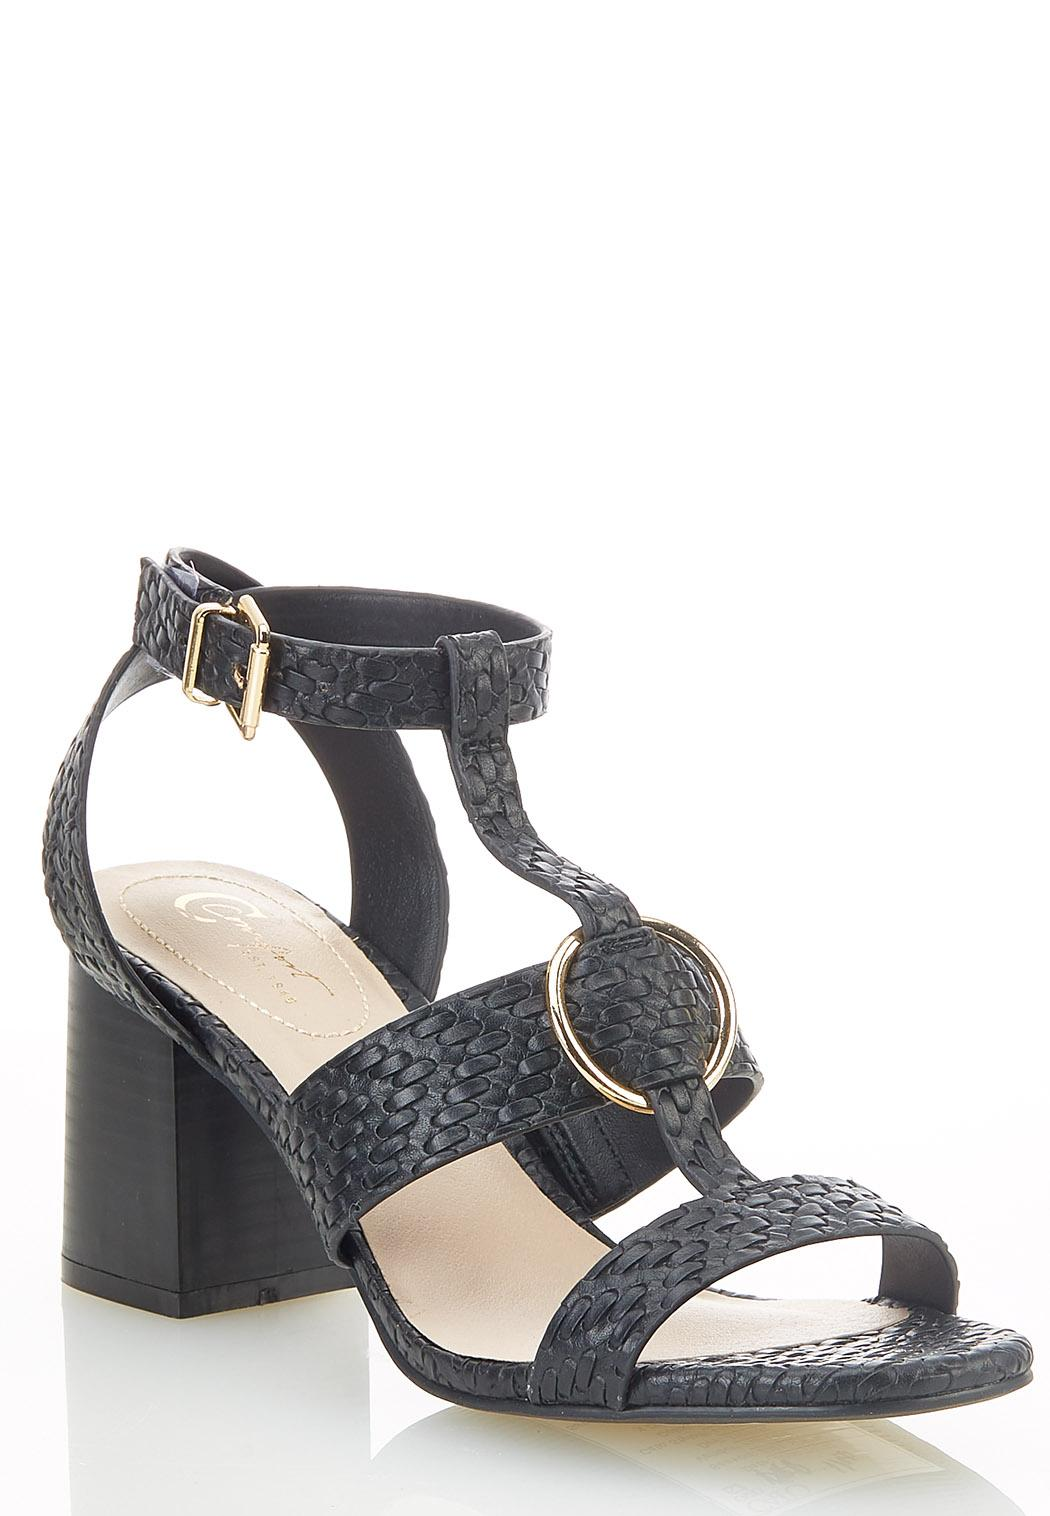 Woven T-Strap Heeled Sandals